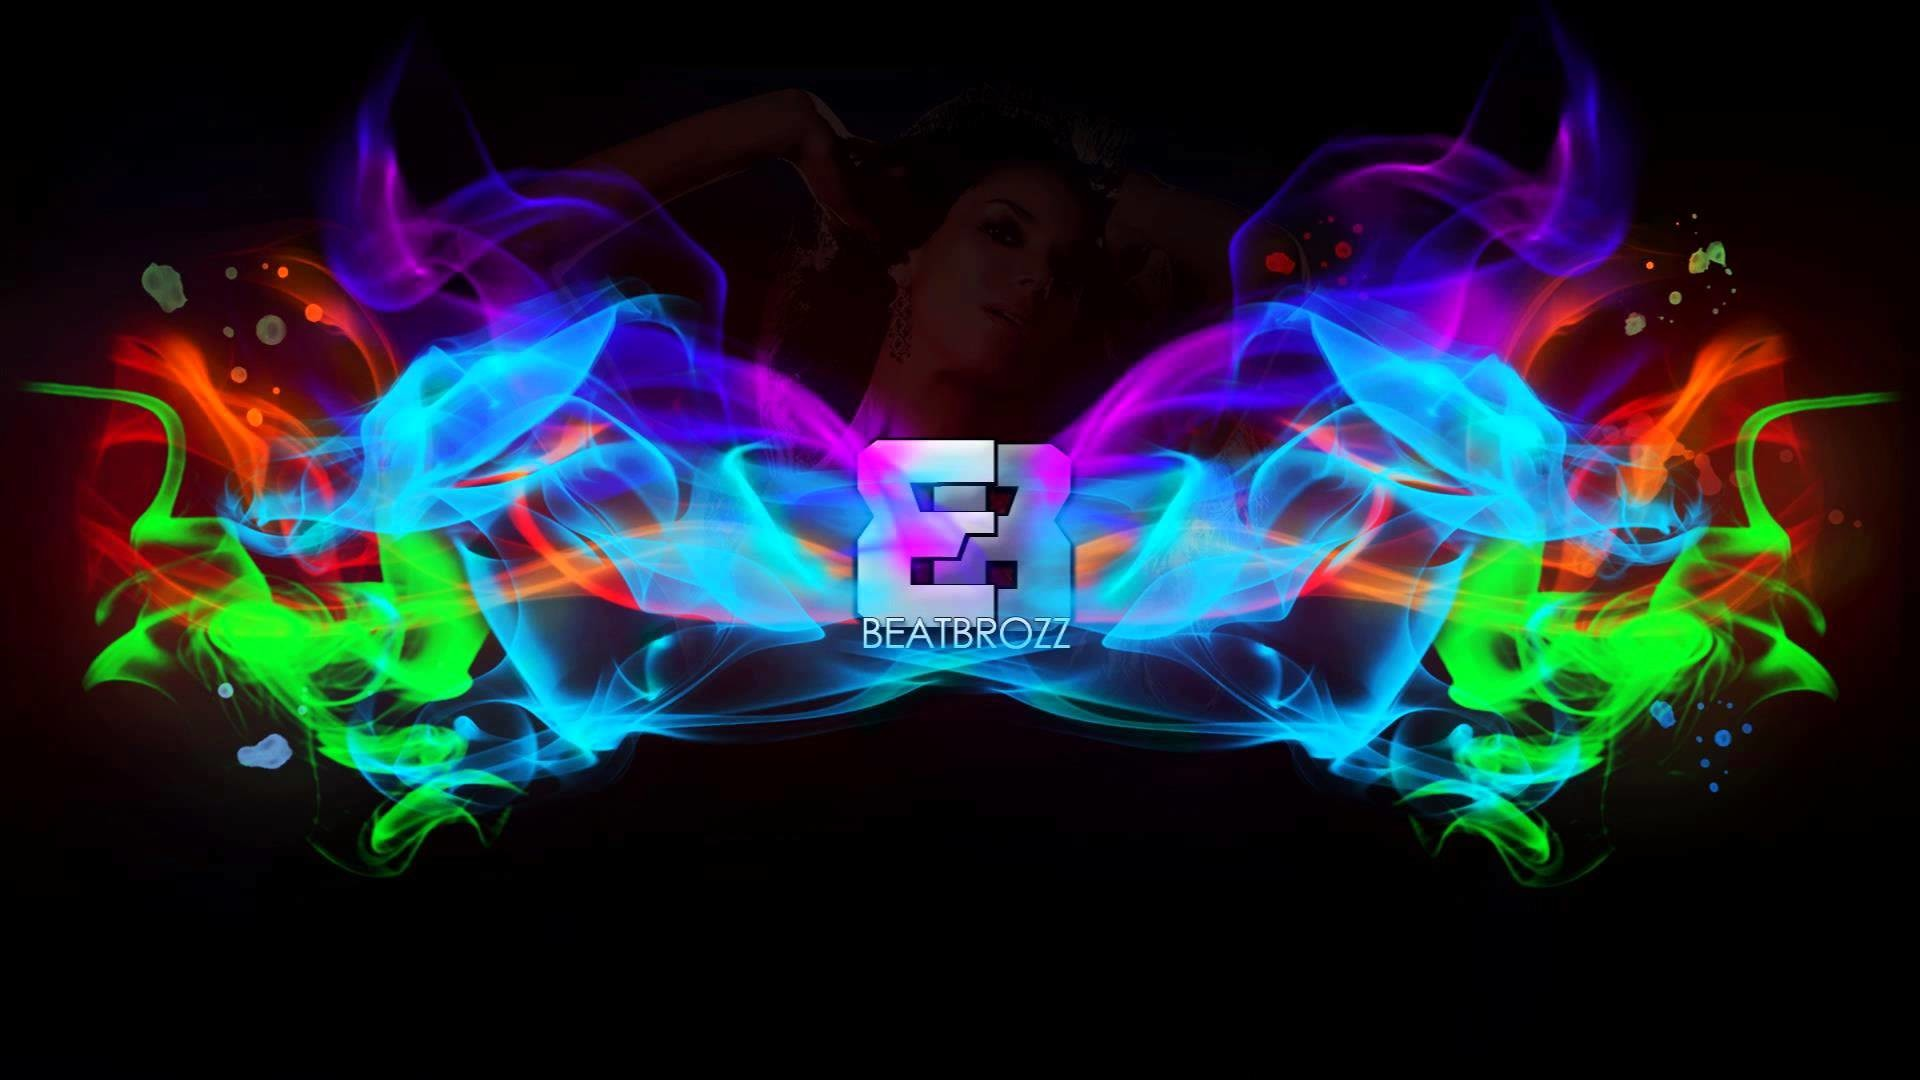 Electro House Music Wallpaper 64 Images